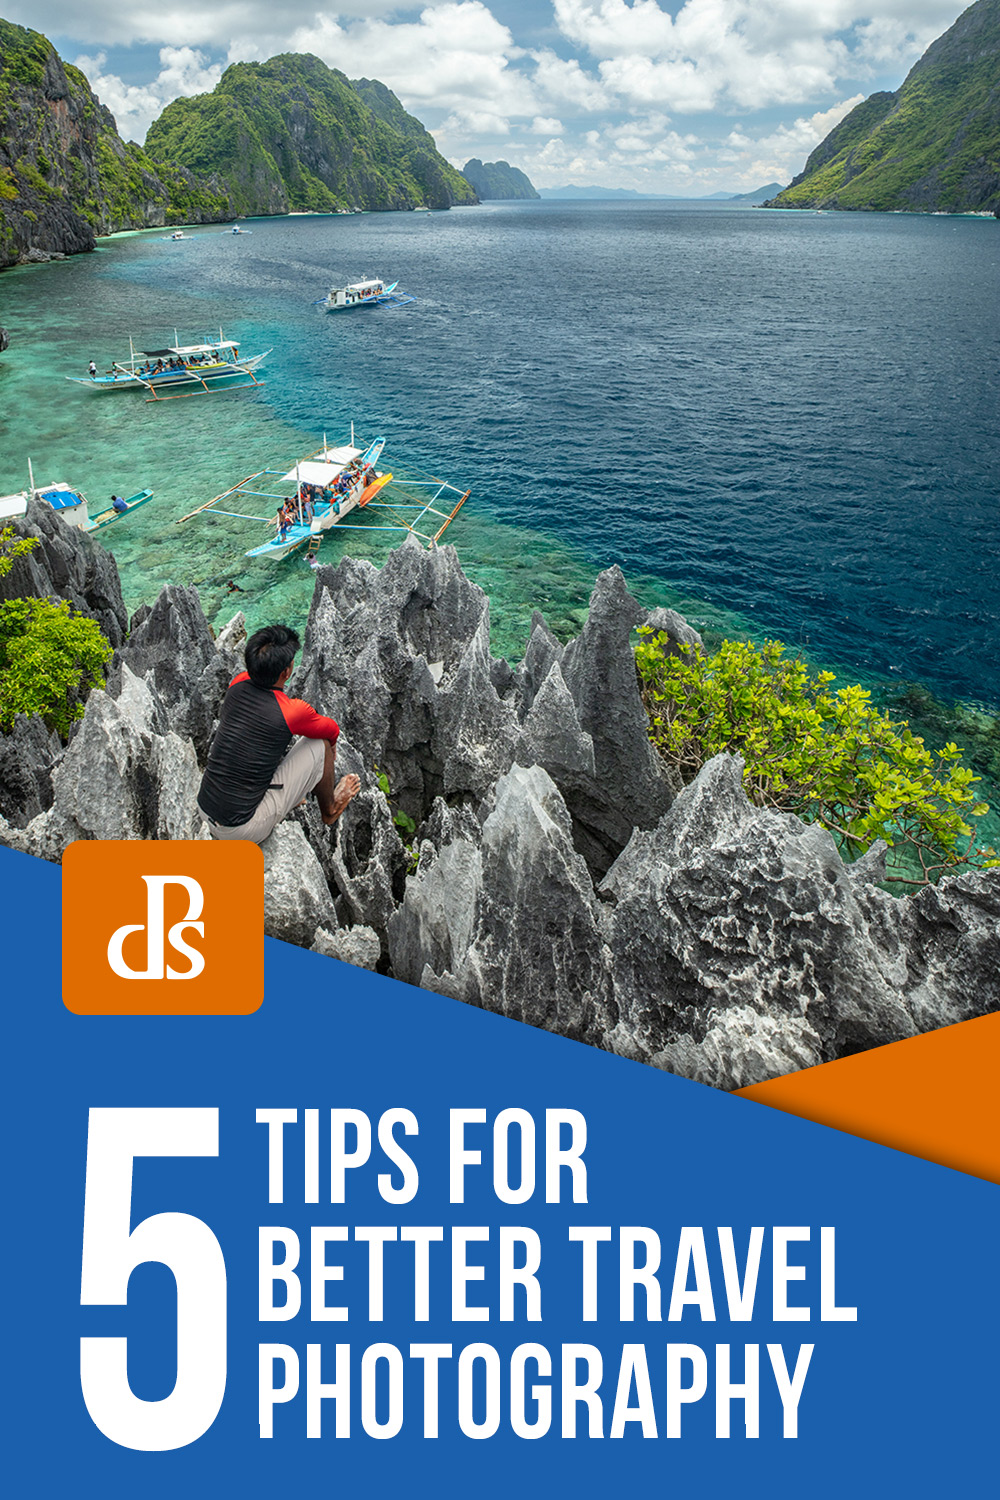 Tips for Better Travel Photography